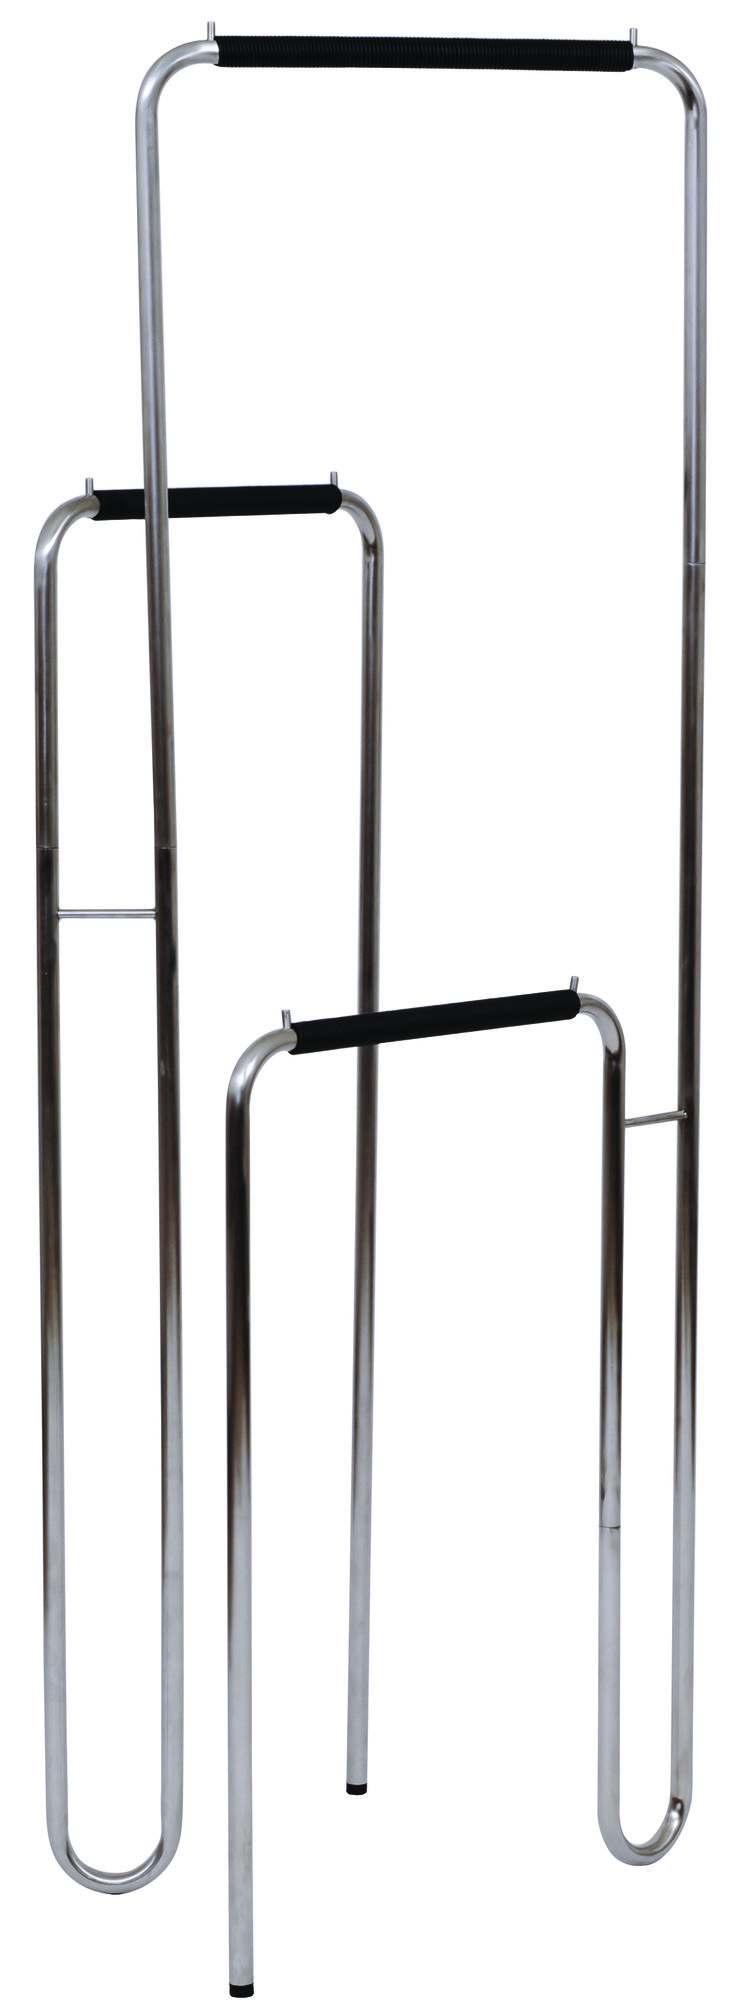 Best the standby rack ideas on pinterest clothes racks clothing